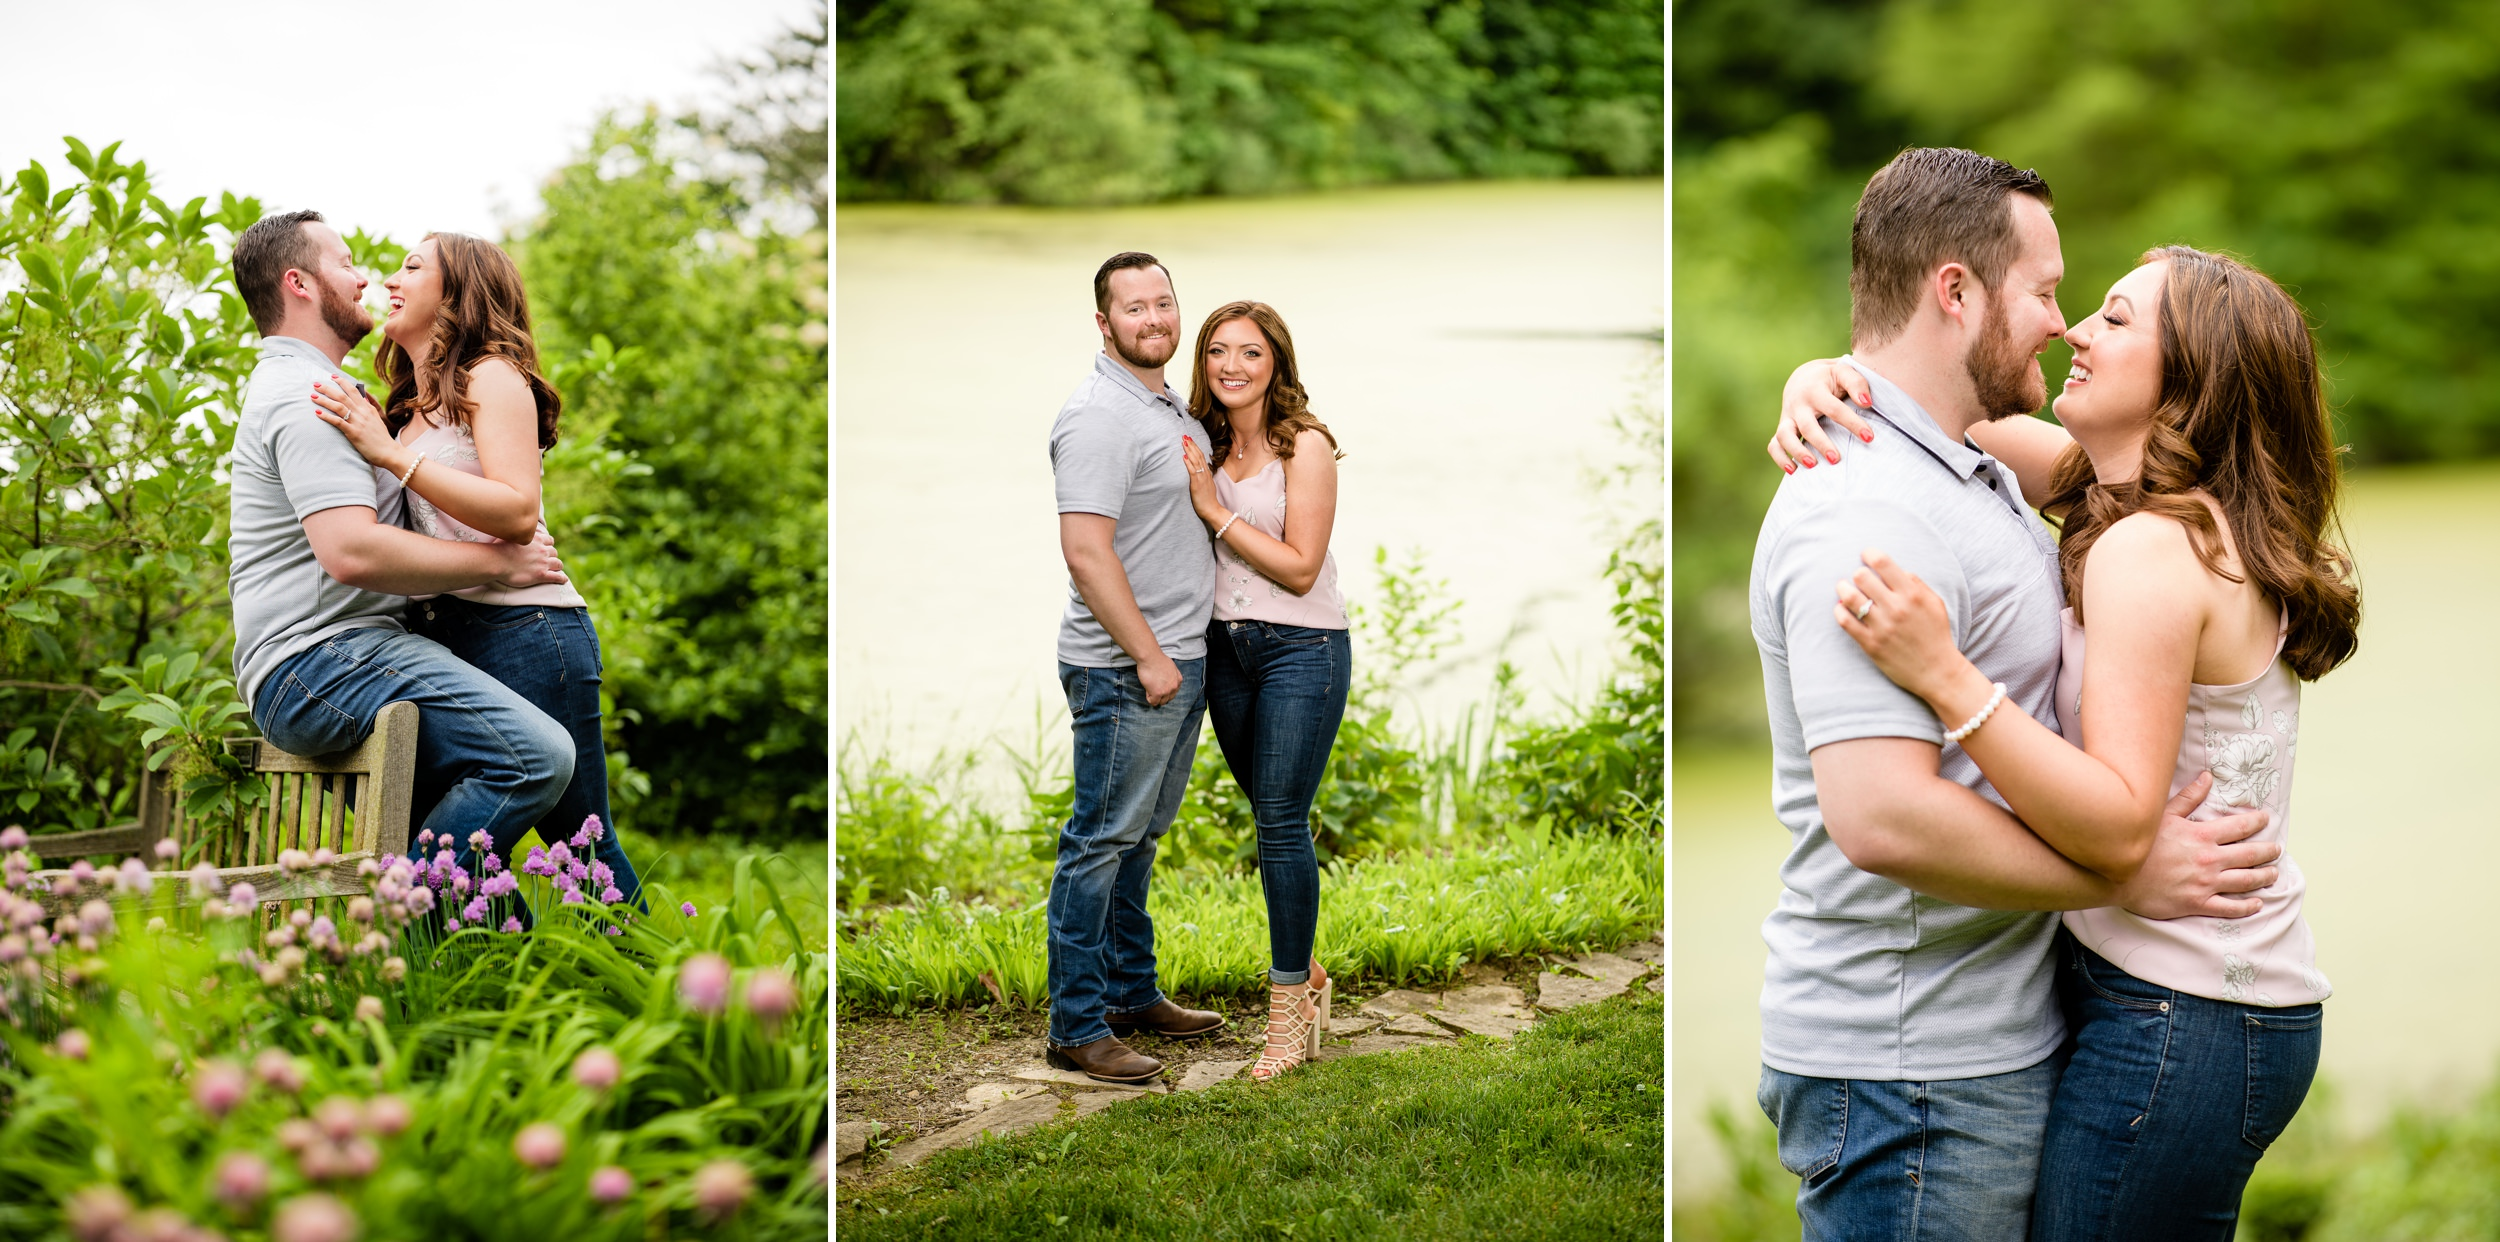 Fun moments during an engagement session in Valparaiso, Indiana.